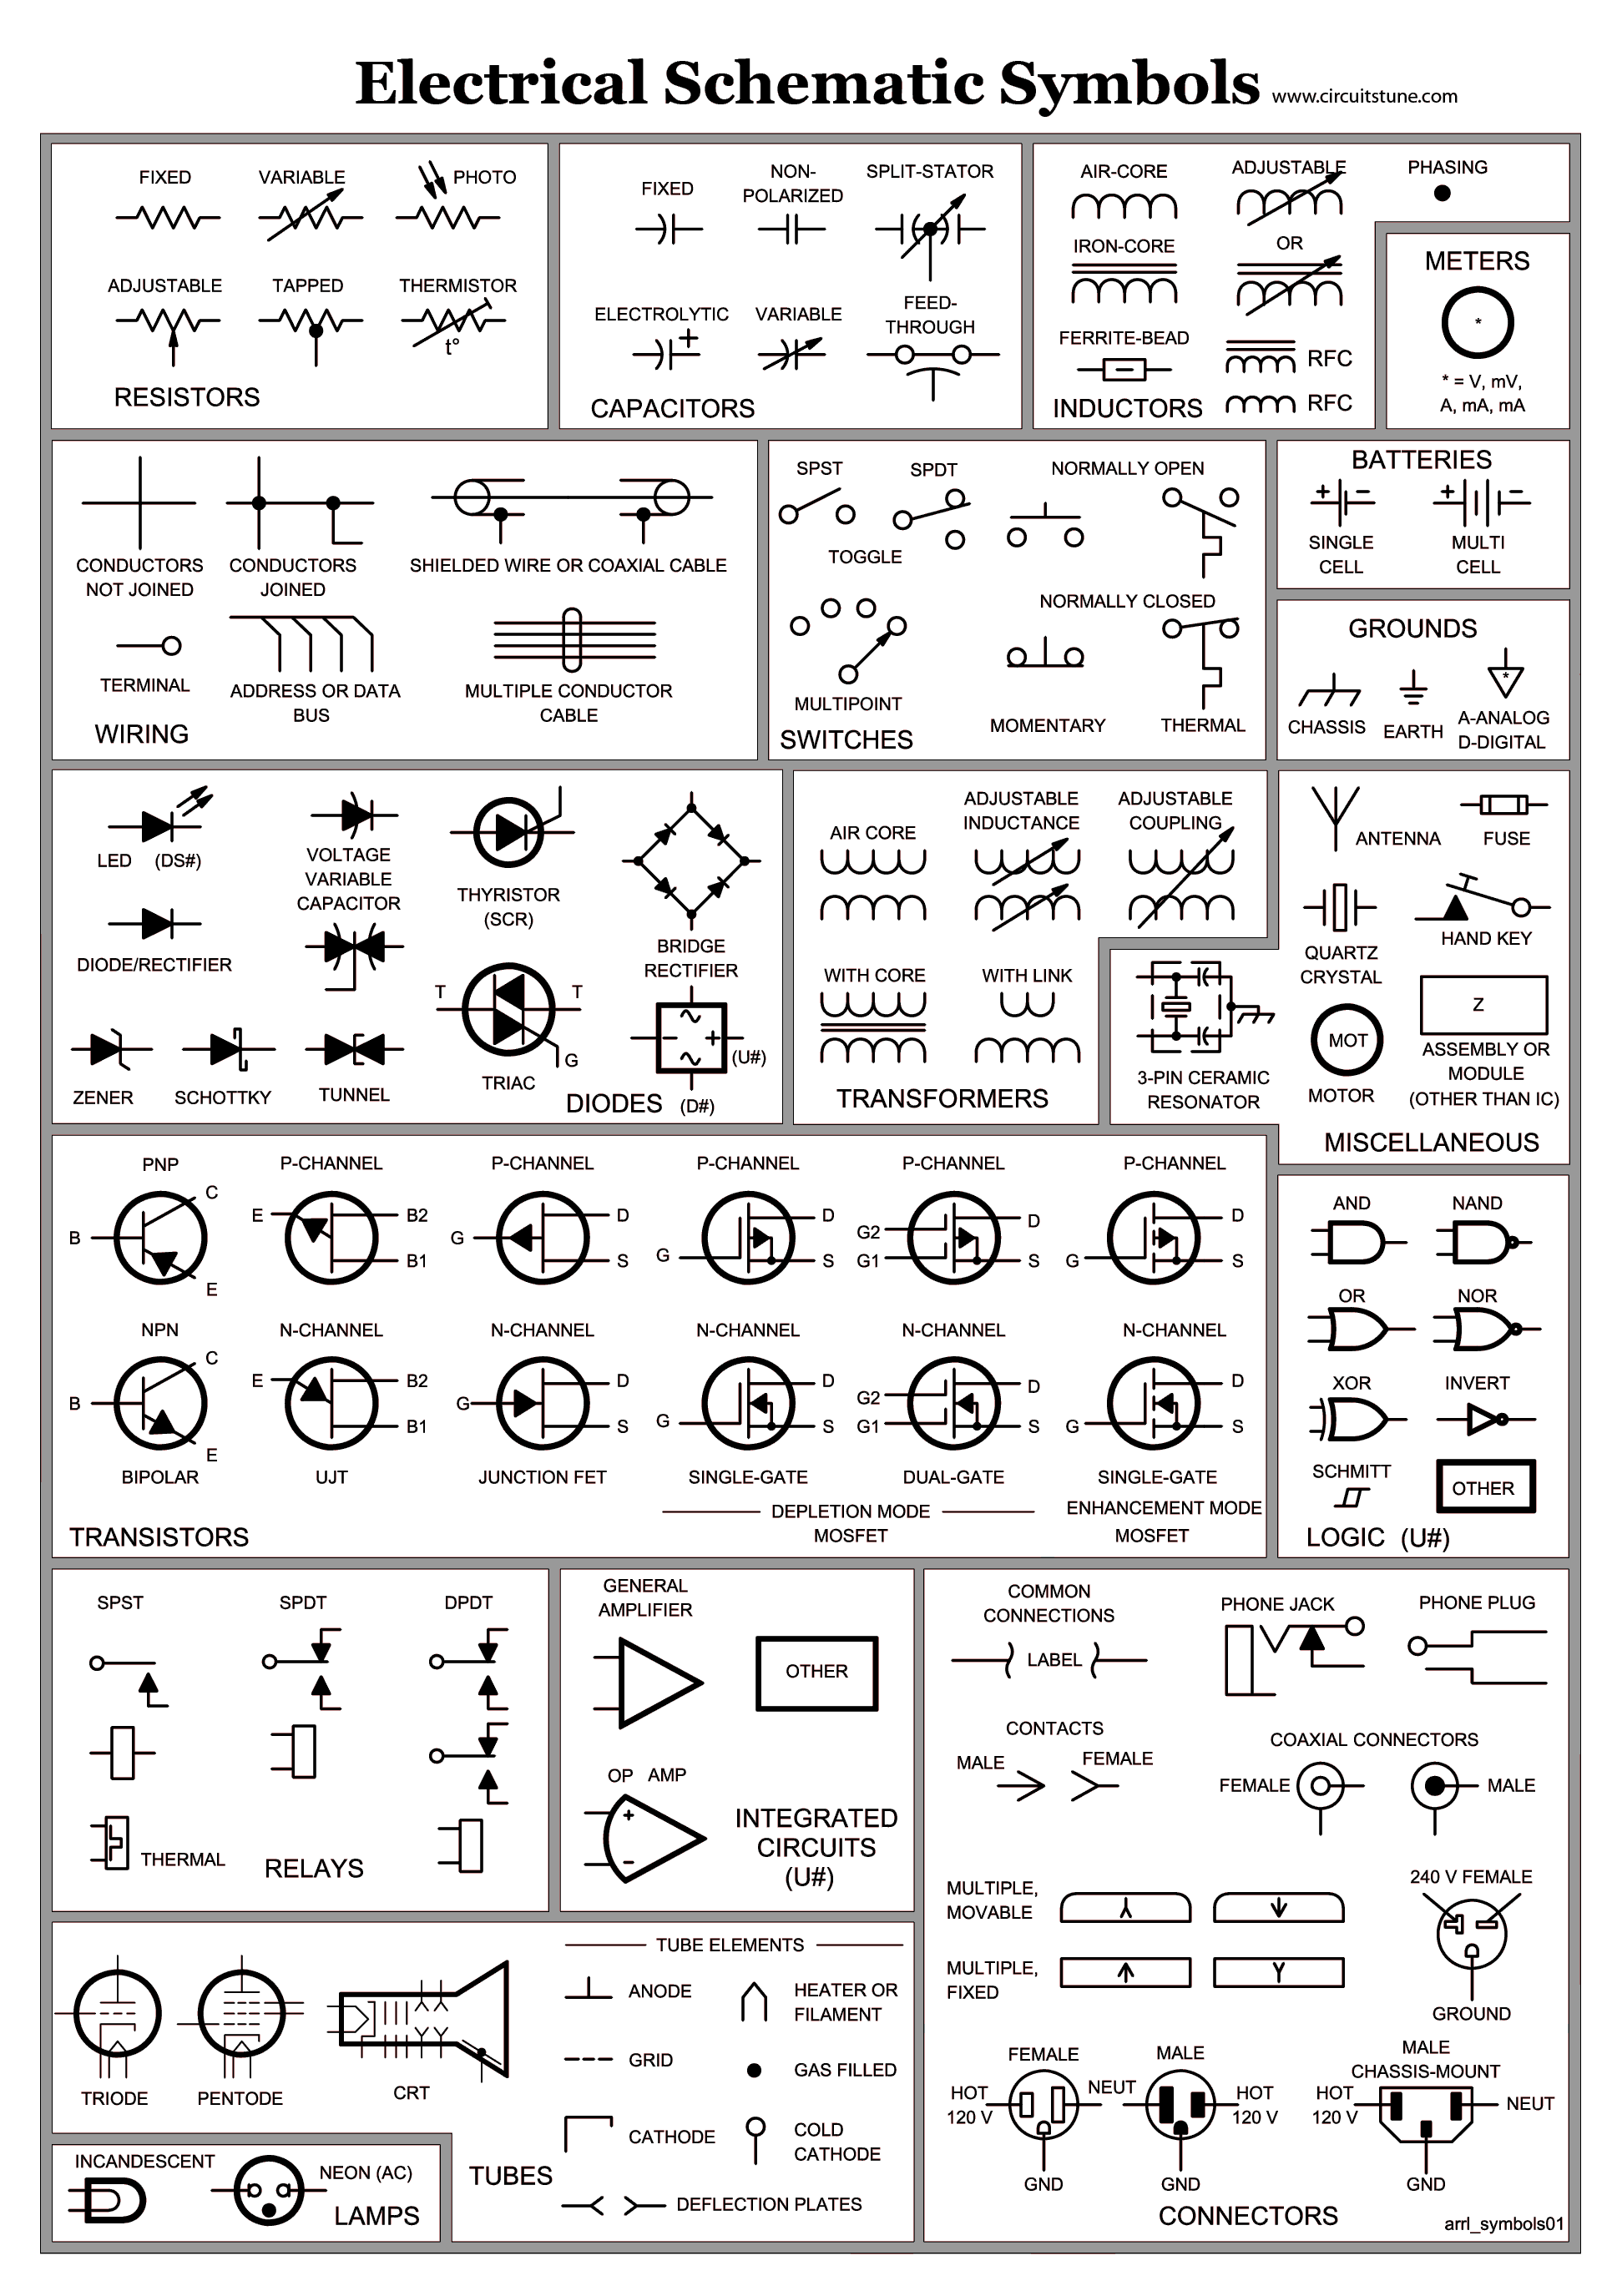 a65d176364692d2ebe913b58a654cfc3 electrical schematic symbols wire diagram symbols automotive Ford Ignition Switch Wiring Diagram at mifinder.co